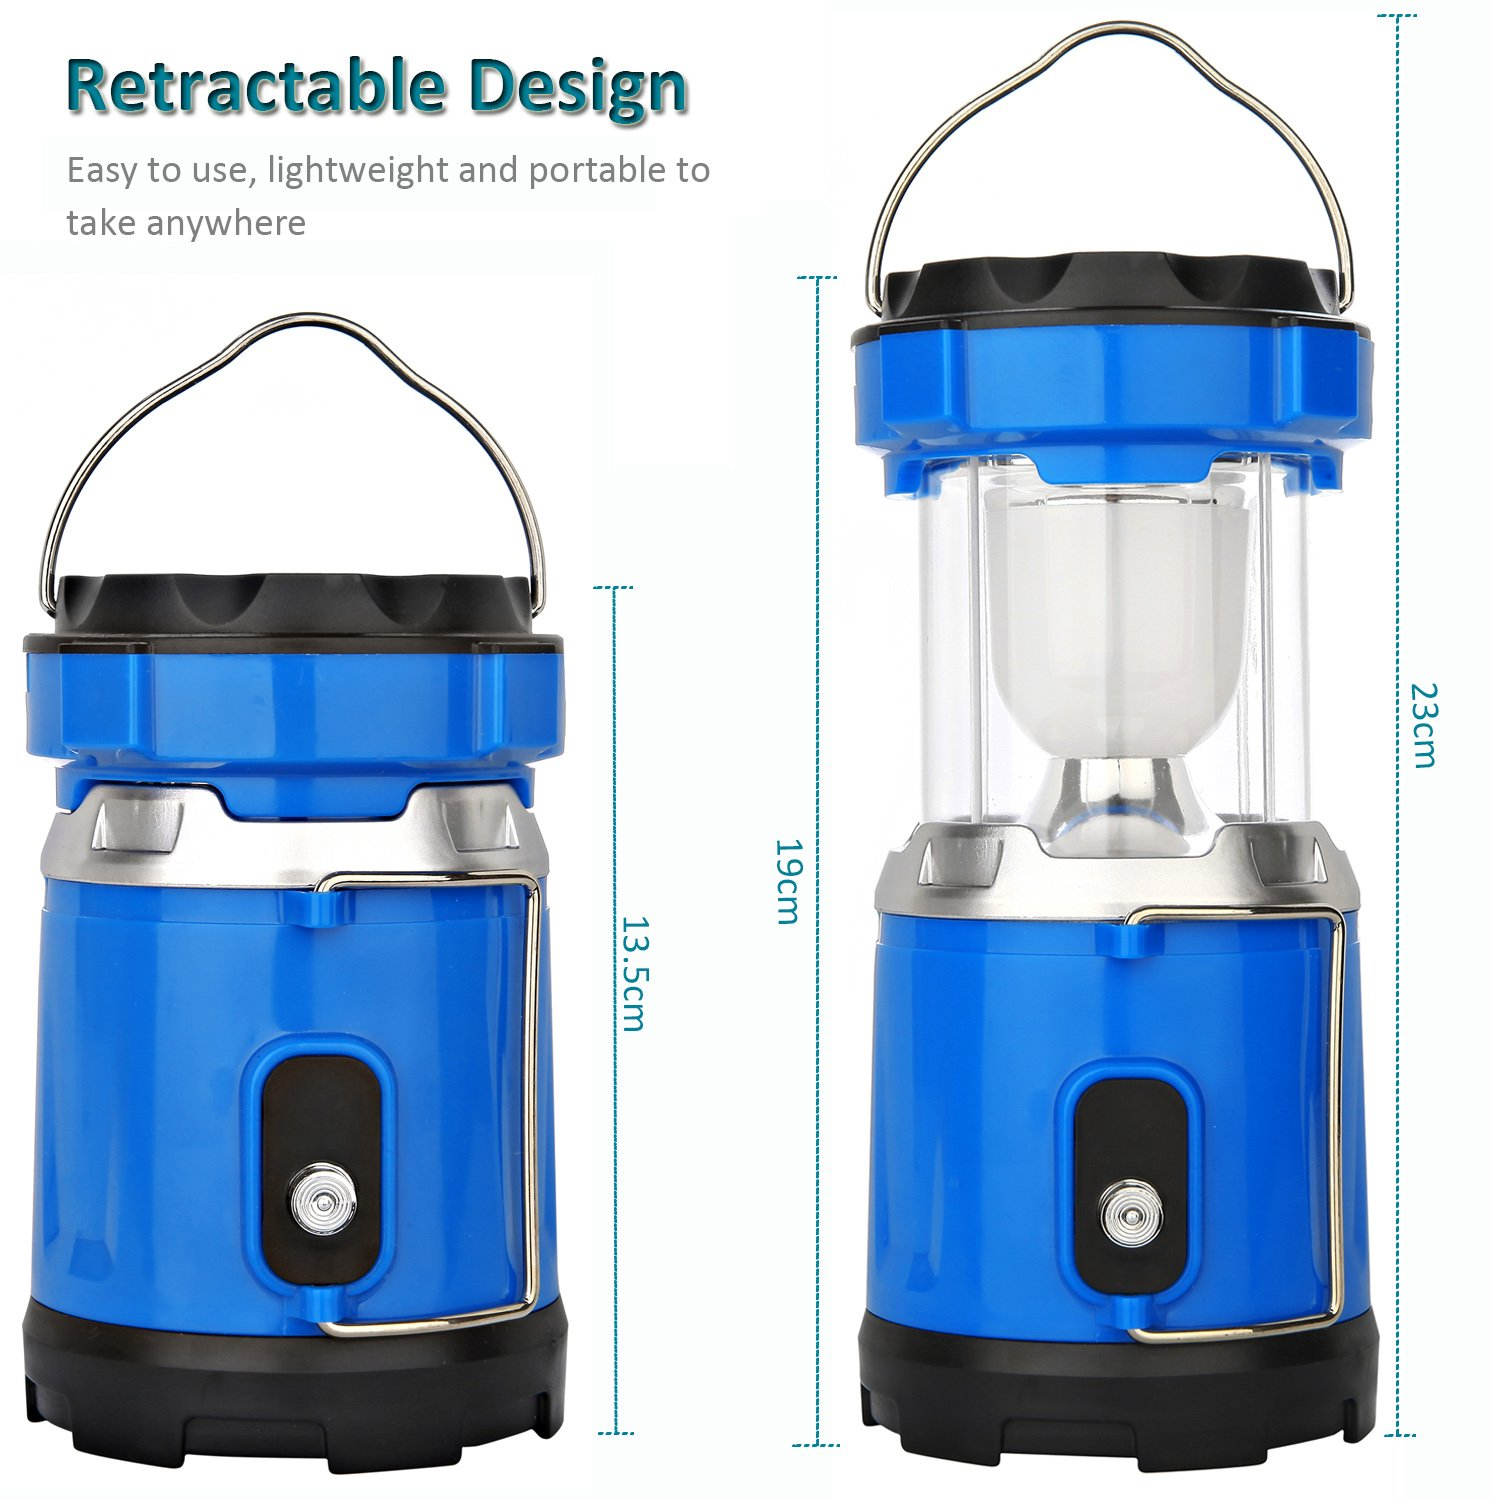 Camping Lantern Light, IRuiYinGo Rechargeable Lamp Solar LED Flashlight with Hanging Blue Color, Great light for Camping/ Hiking/ Backpacking...Outdoor Activities by IRuiYinGo (Image #2)